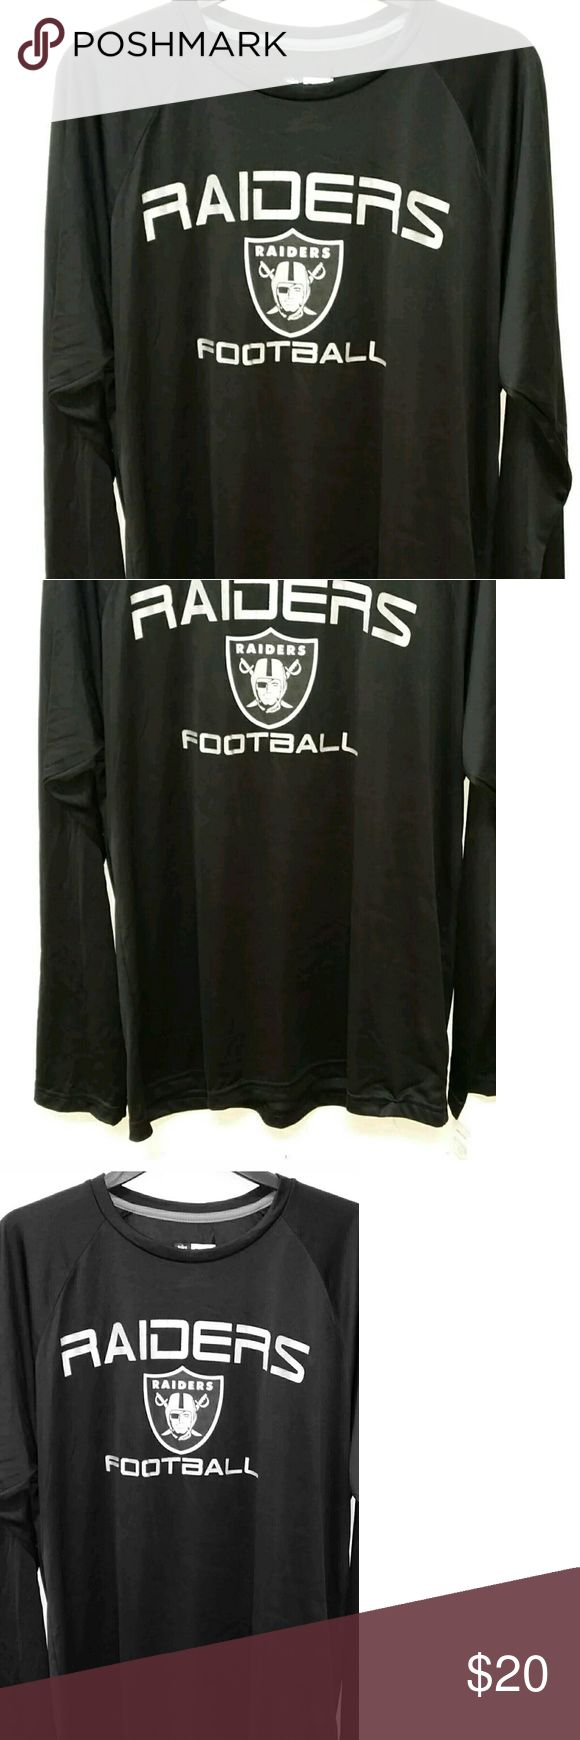 NFL Oakland Raiders Poly Long Sleeve Shirt Size L Ultra lightweight poly tee is perfect for the warm season.   Size: L  New with Tags  This tee does not say Oakland which is perfect because you can still wear it even if they move to Vegas!! NFL TEAM APPAREL  Shirts Tees - Long Sleeve